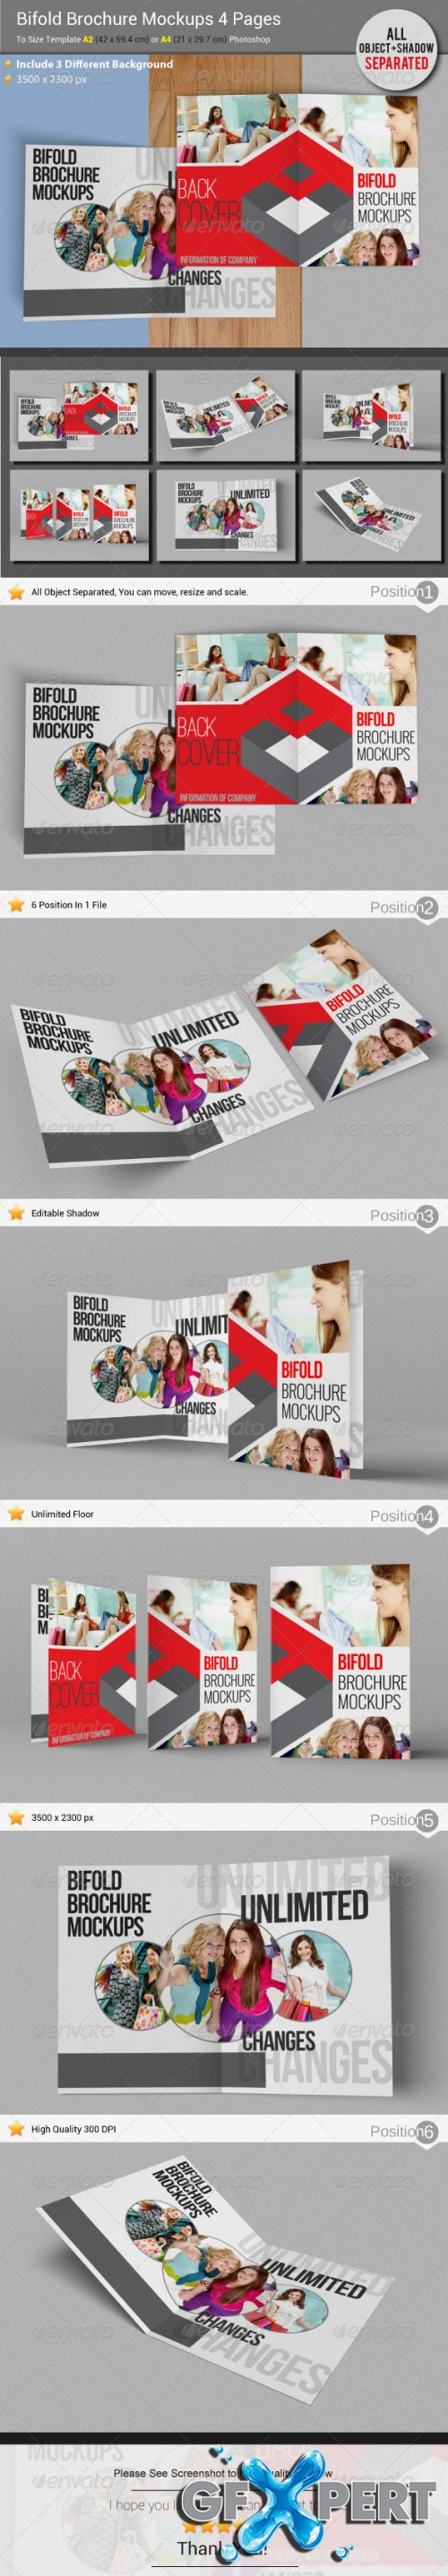 GraphicRiver - Brochure Mockups 4 Pages